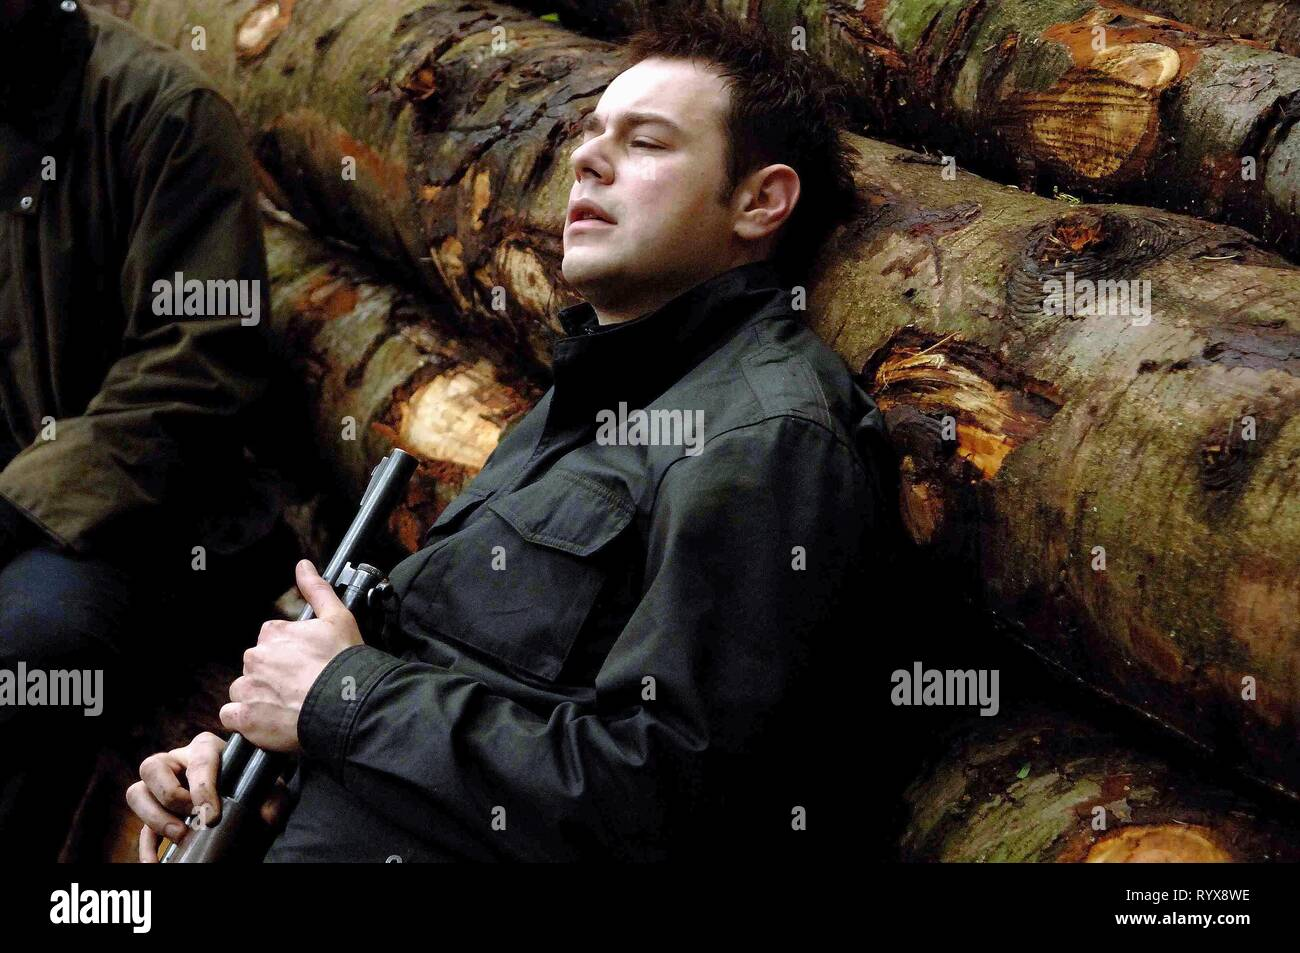 DANNY DYER, OUTLAW, 2007 - Stock Image